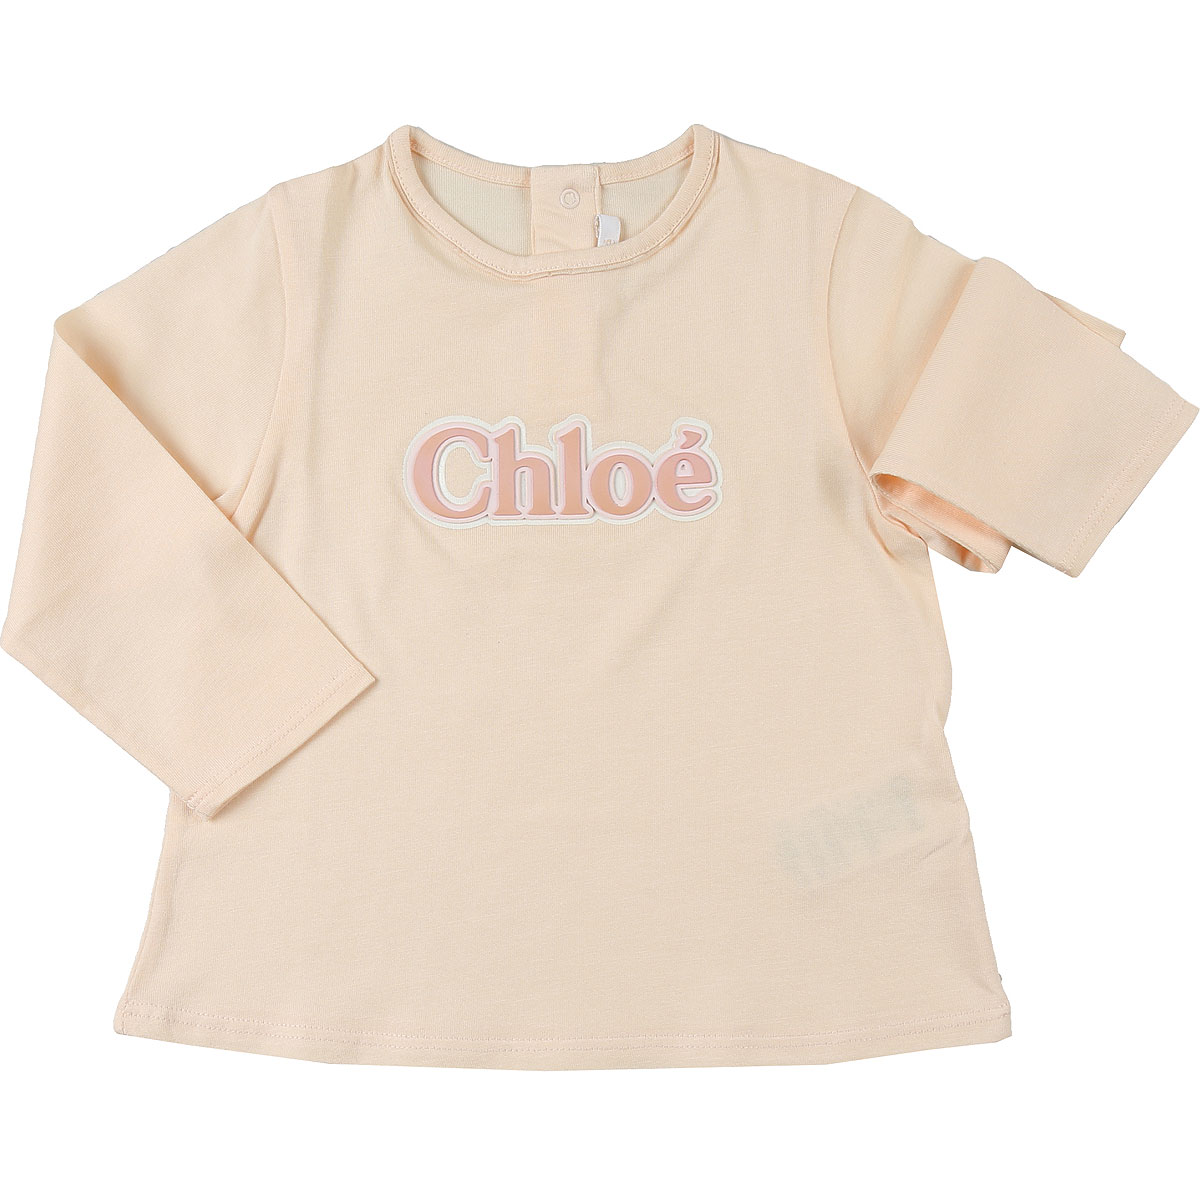 Chloe Baby T-Shirt for Girls On Sale, Pale Pink, Cotton, 2019, 12M 18M 2Y 3Y 9M